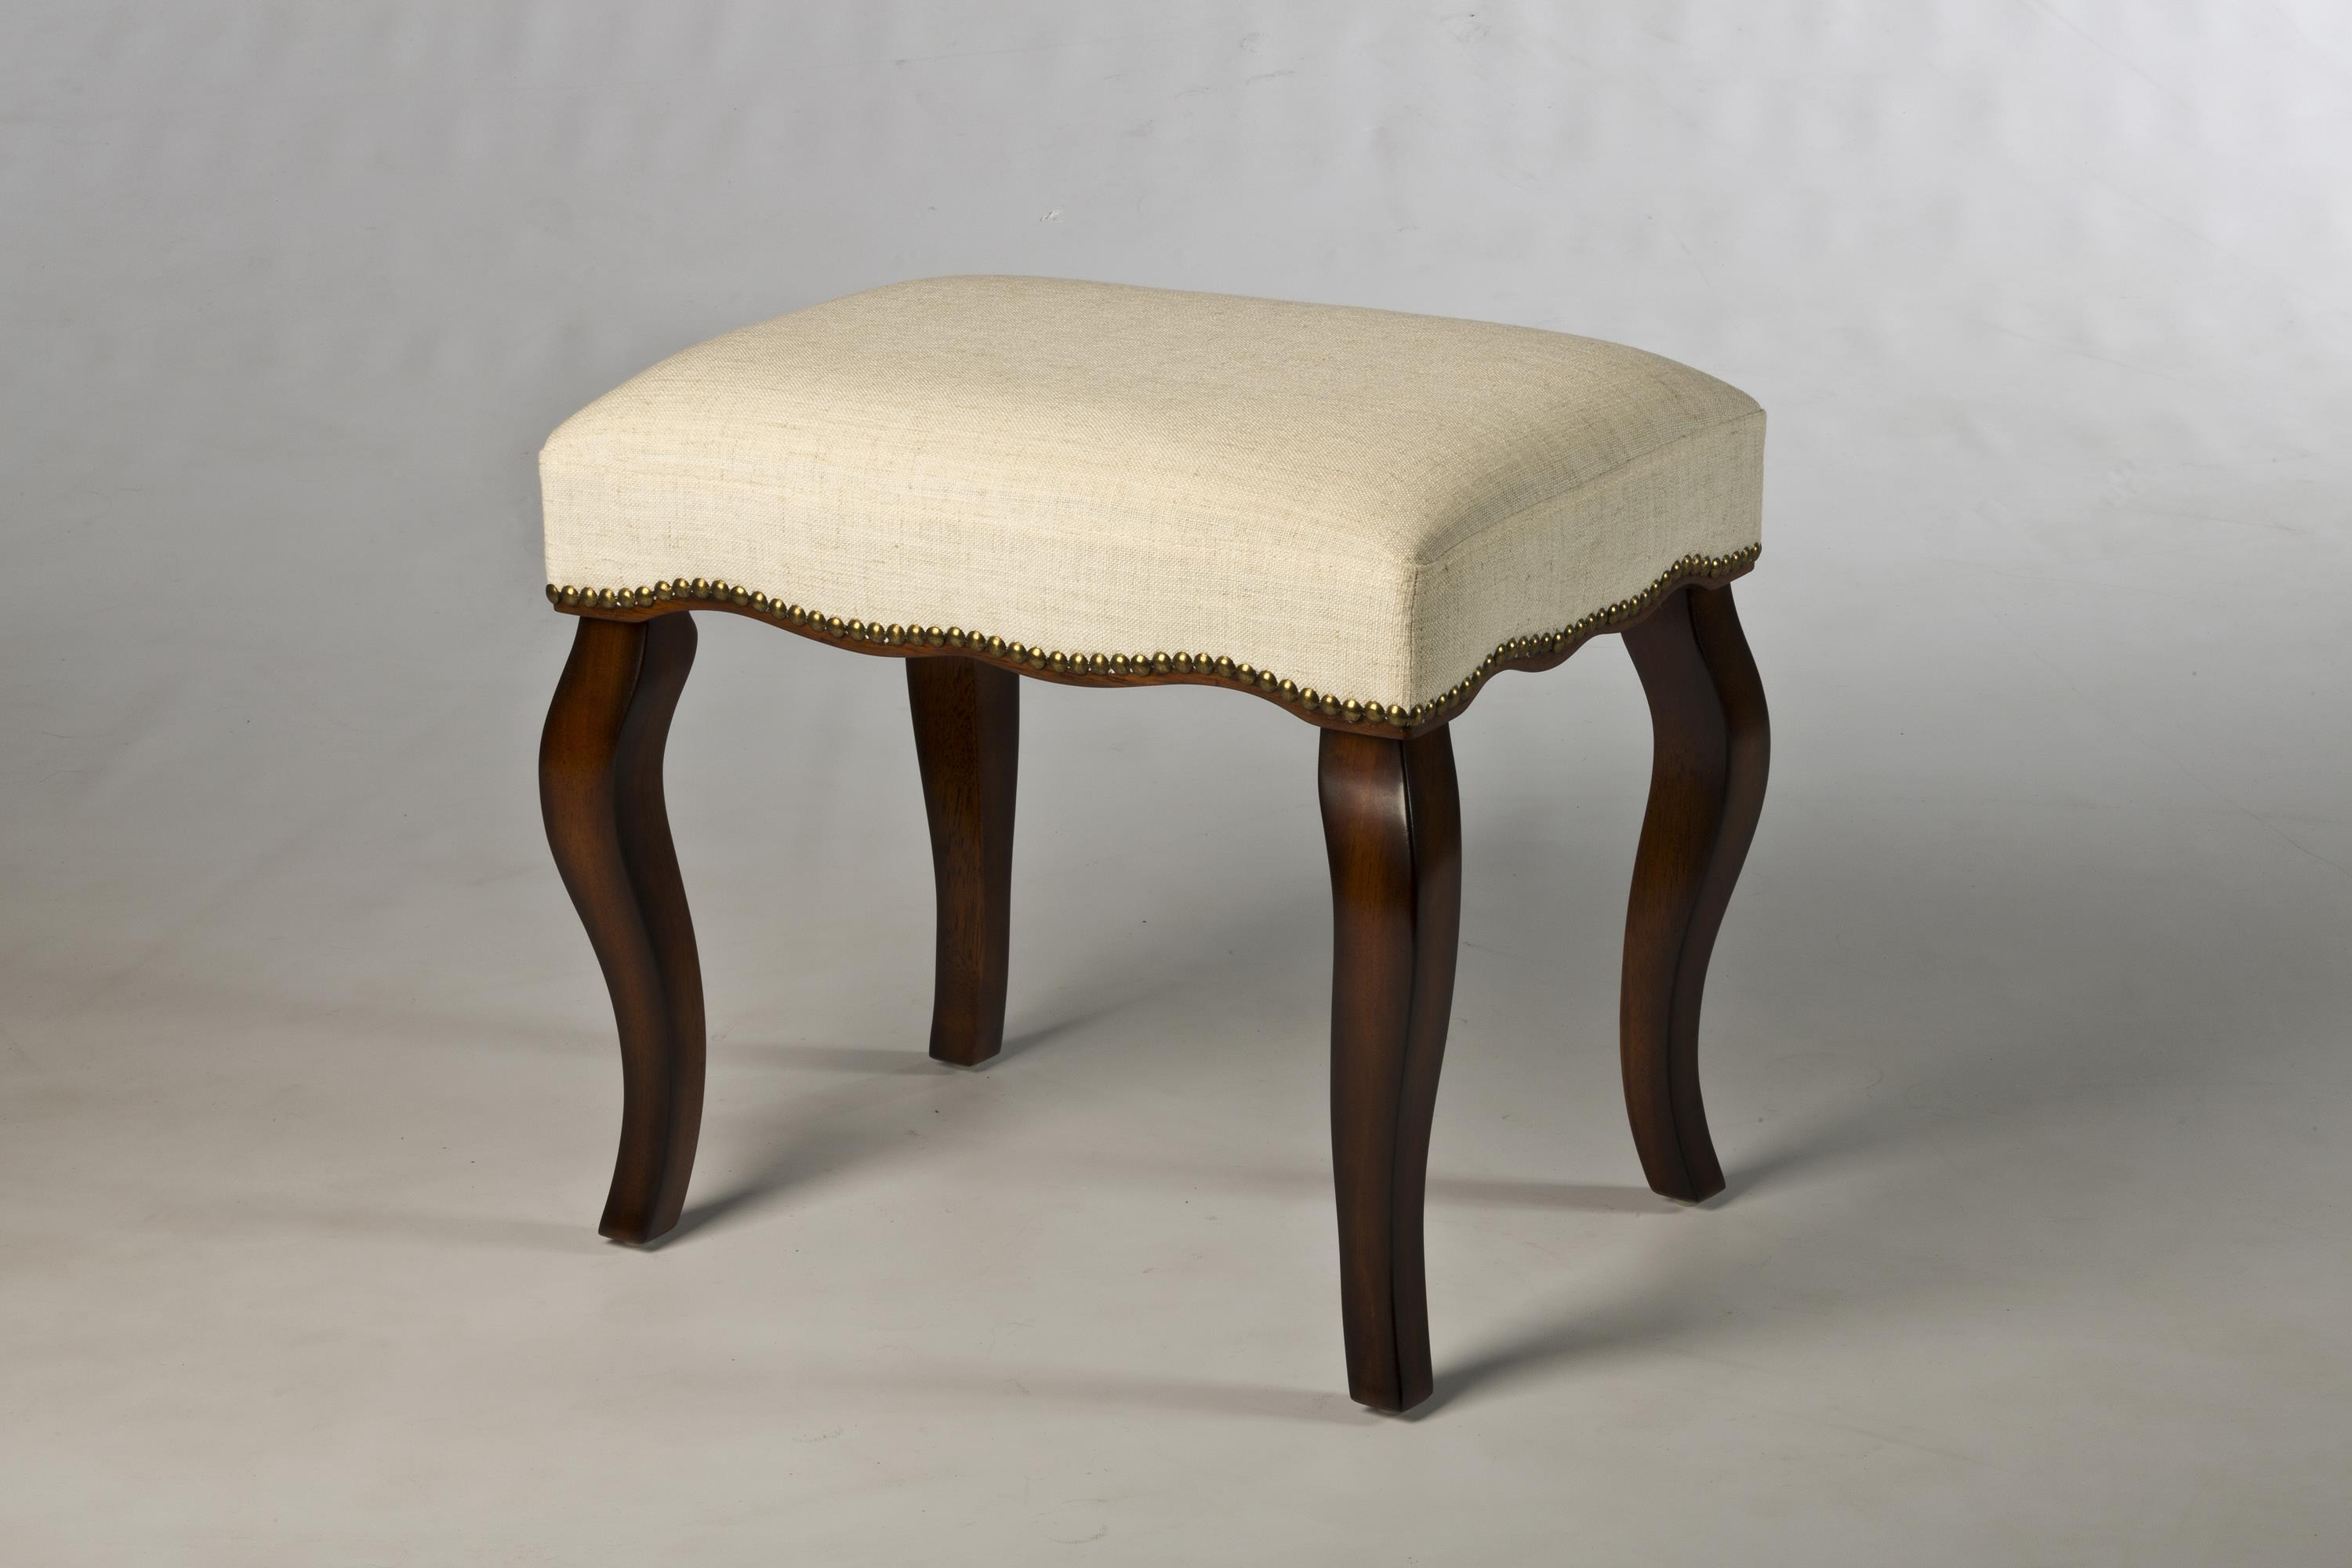 Hamilton Backless Vanity Stool With Curved Legs By